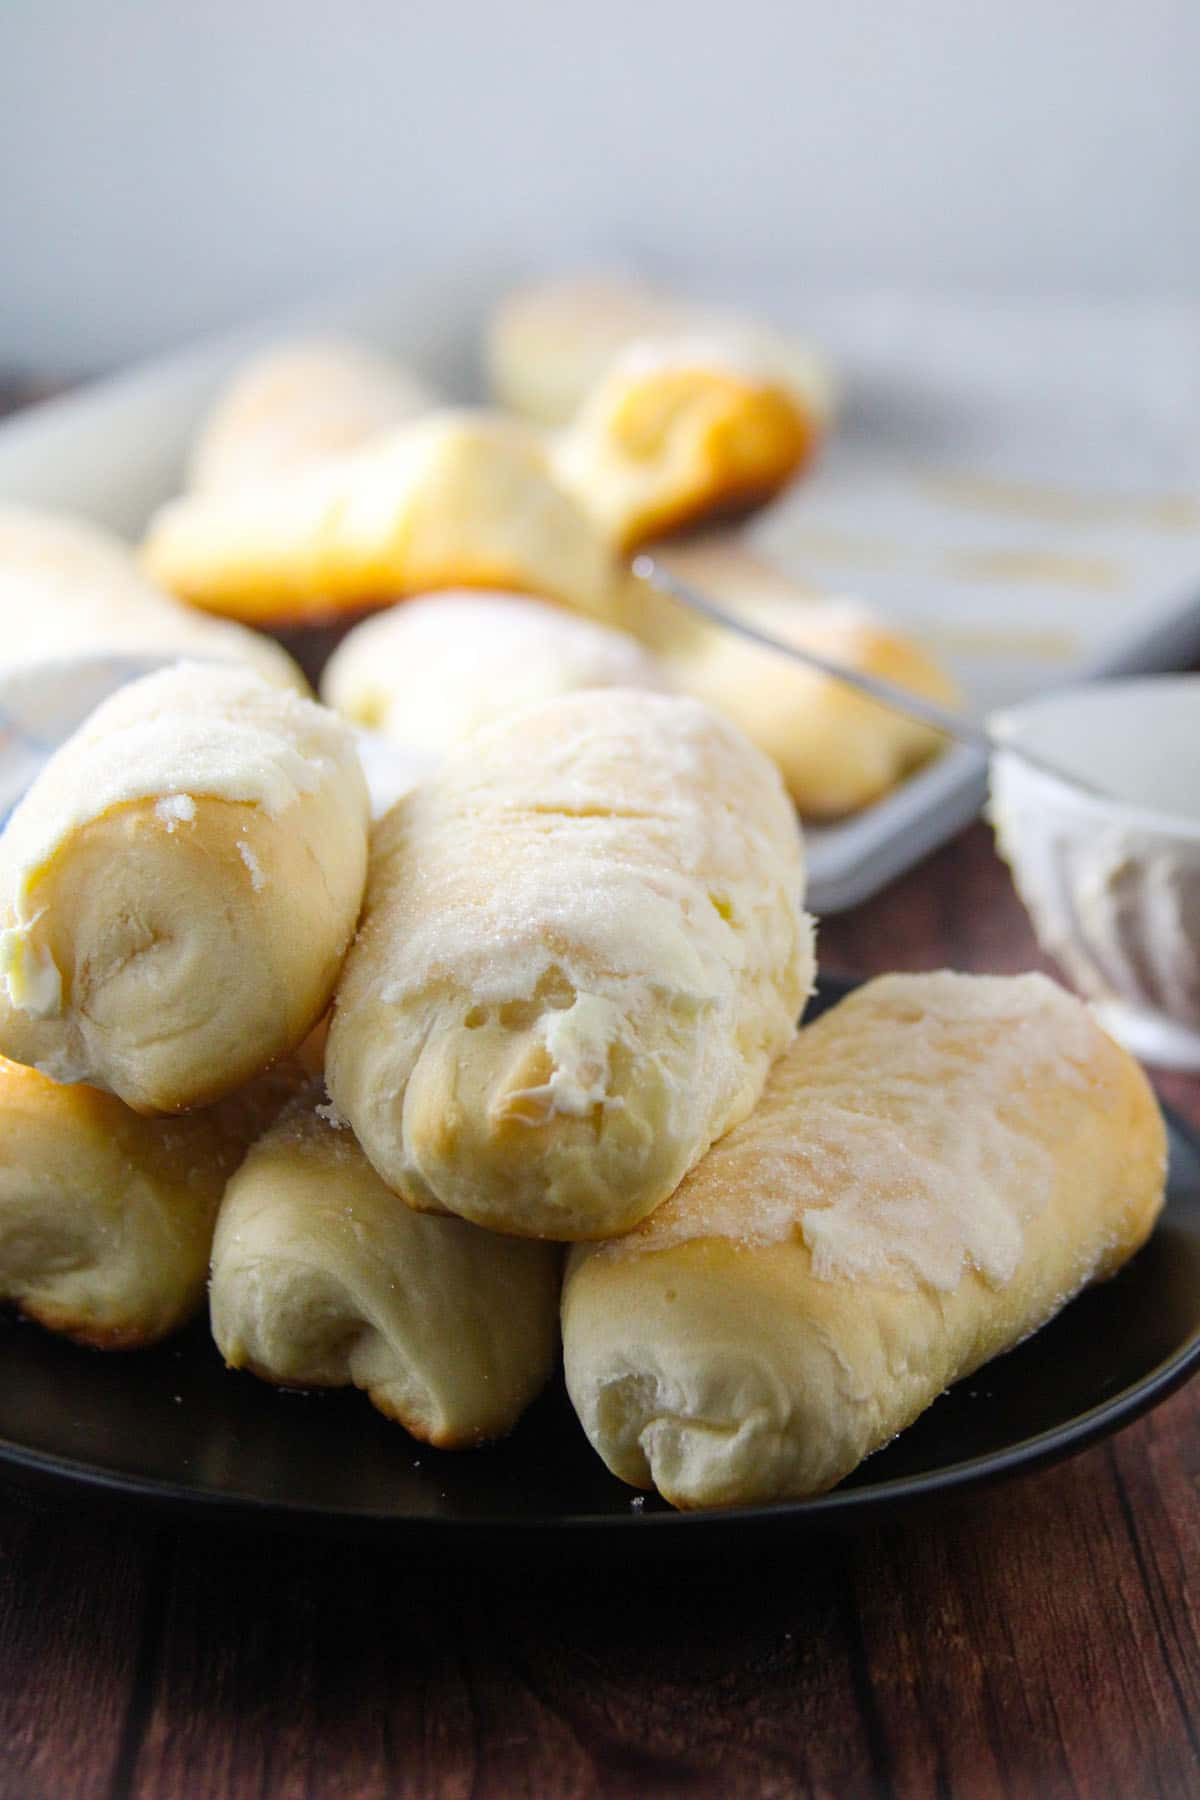 Sweet cheese rolls arranged on a small plate.